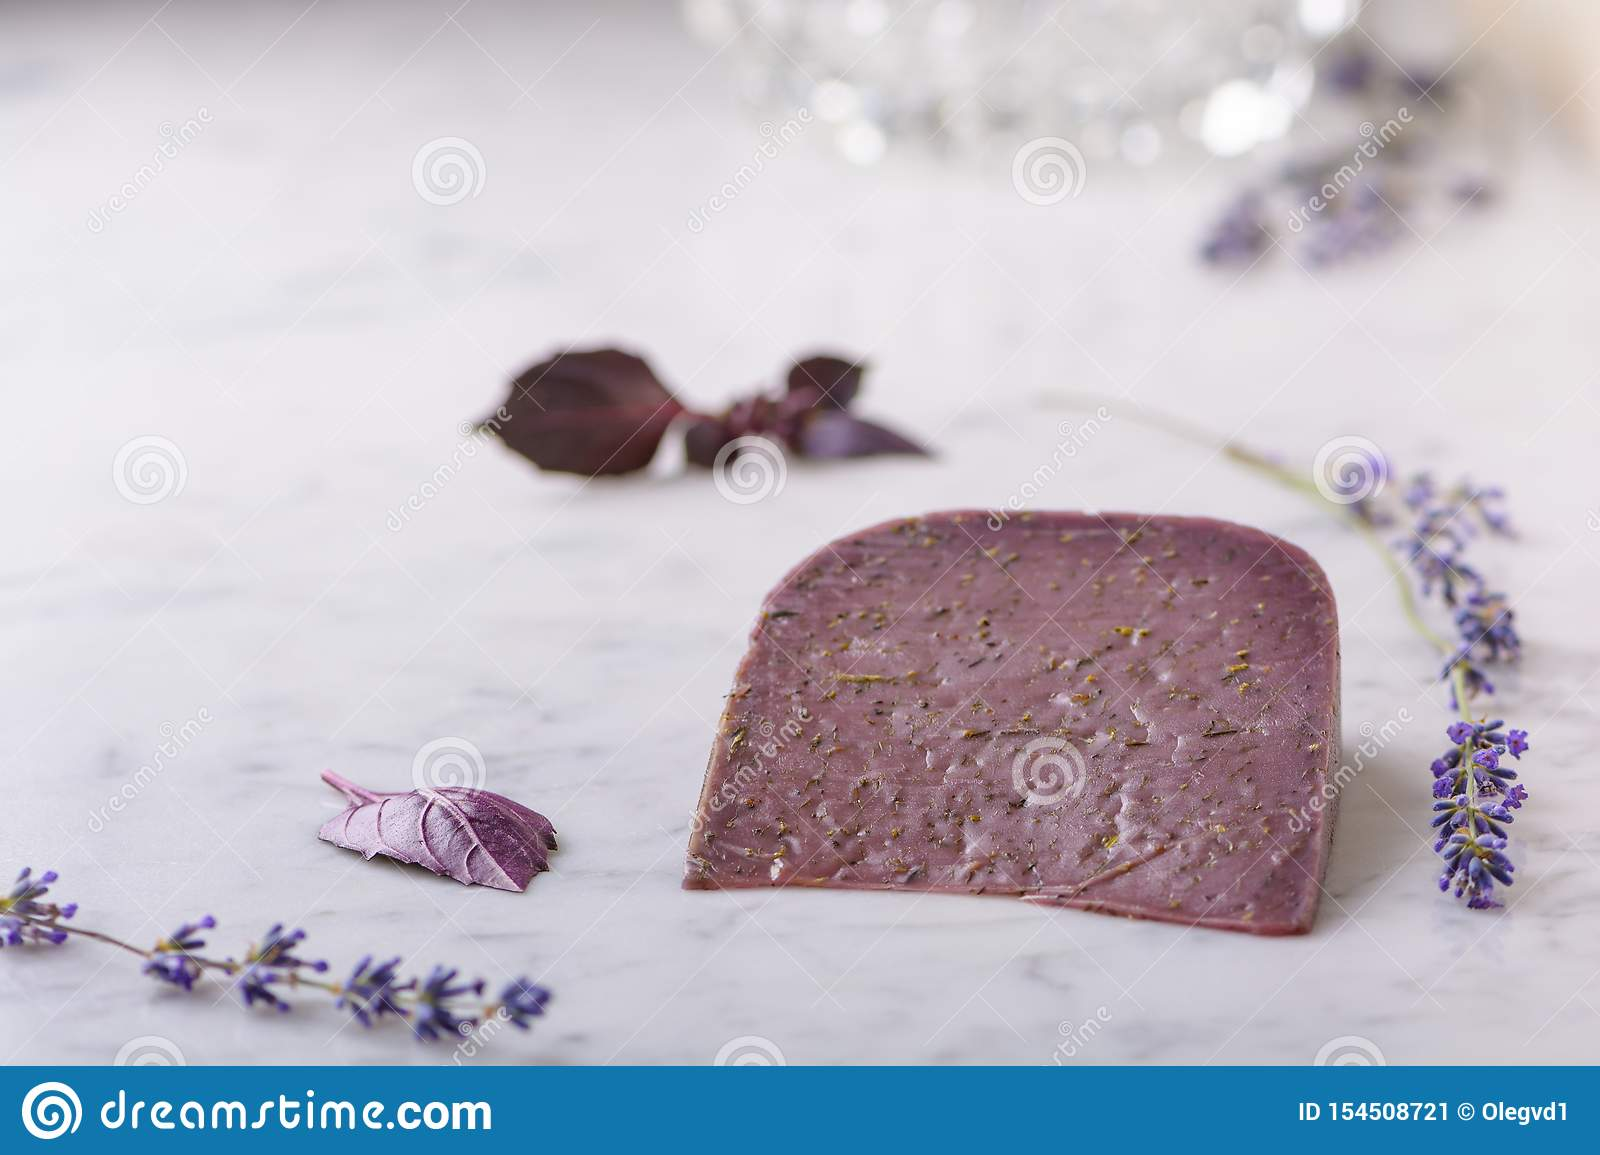 Piece of Basiron lavender cheese, lavender flowers and basil leaves on white marble table